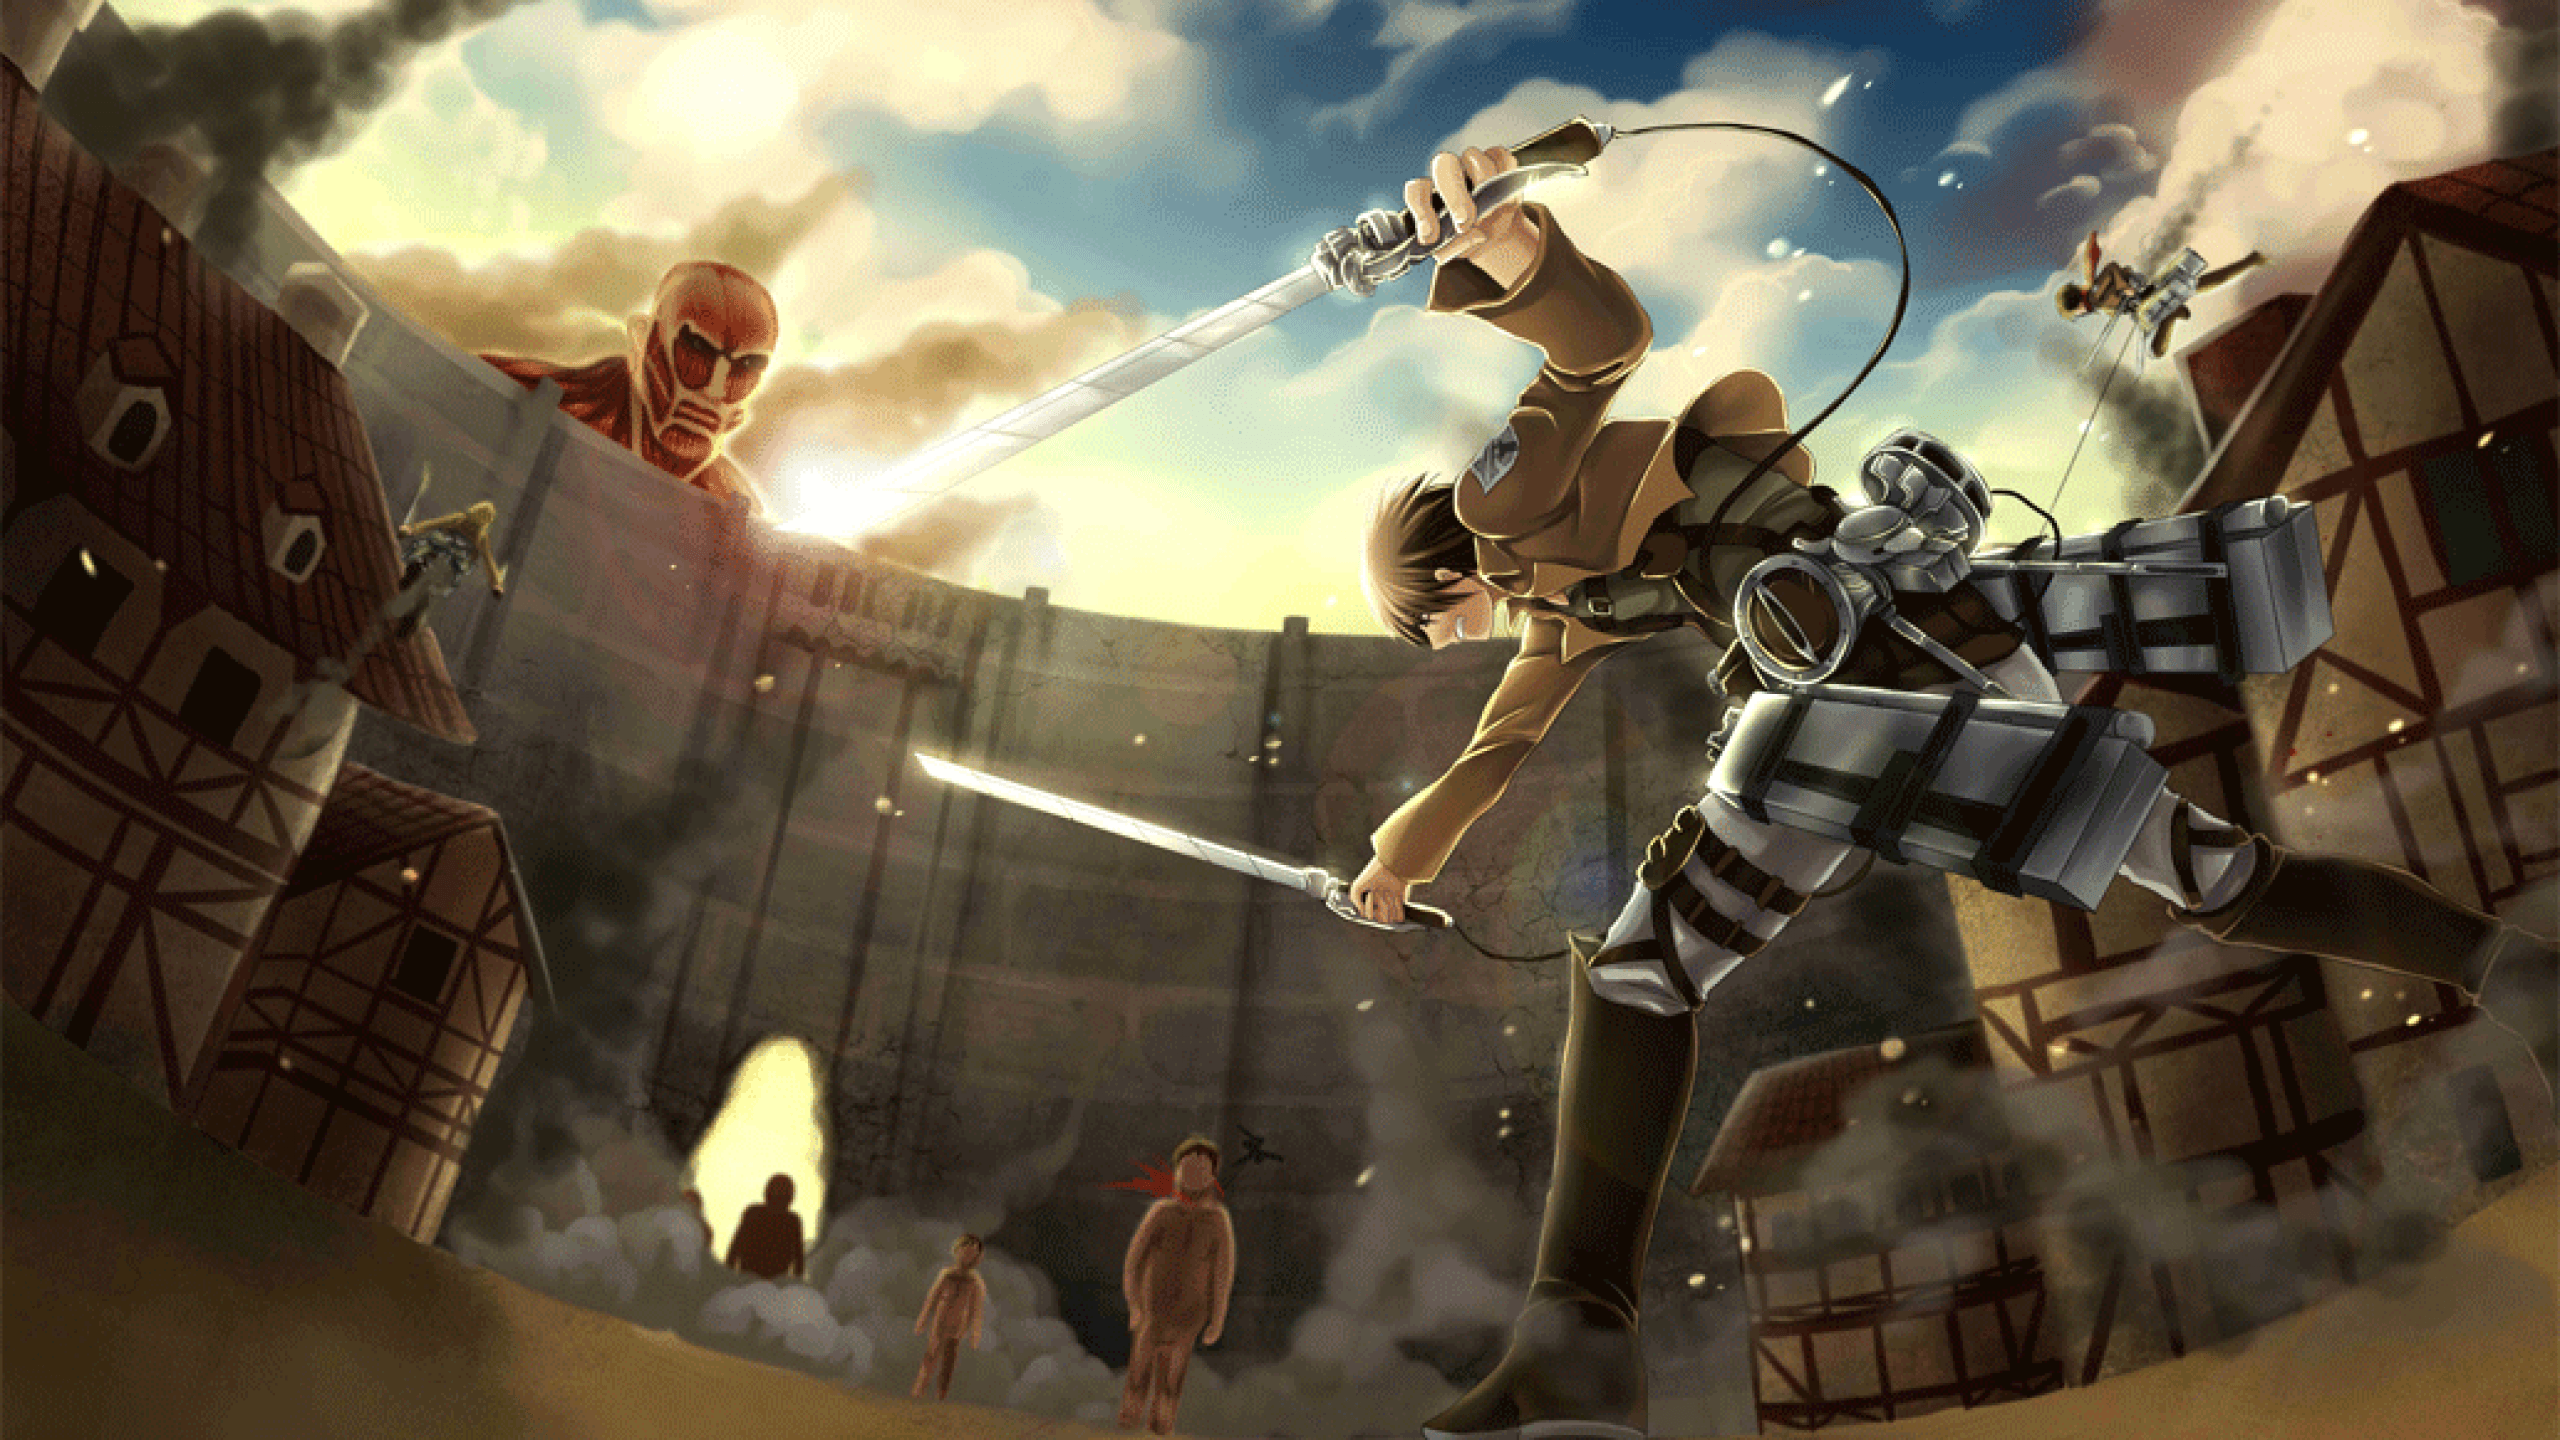 Advertisement platforms categories 0.1042015 user rating6 1/2 zip into the world of the popular ani. Attack On Titan HD Wallpapers - Wallpaper Cave